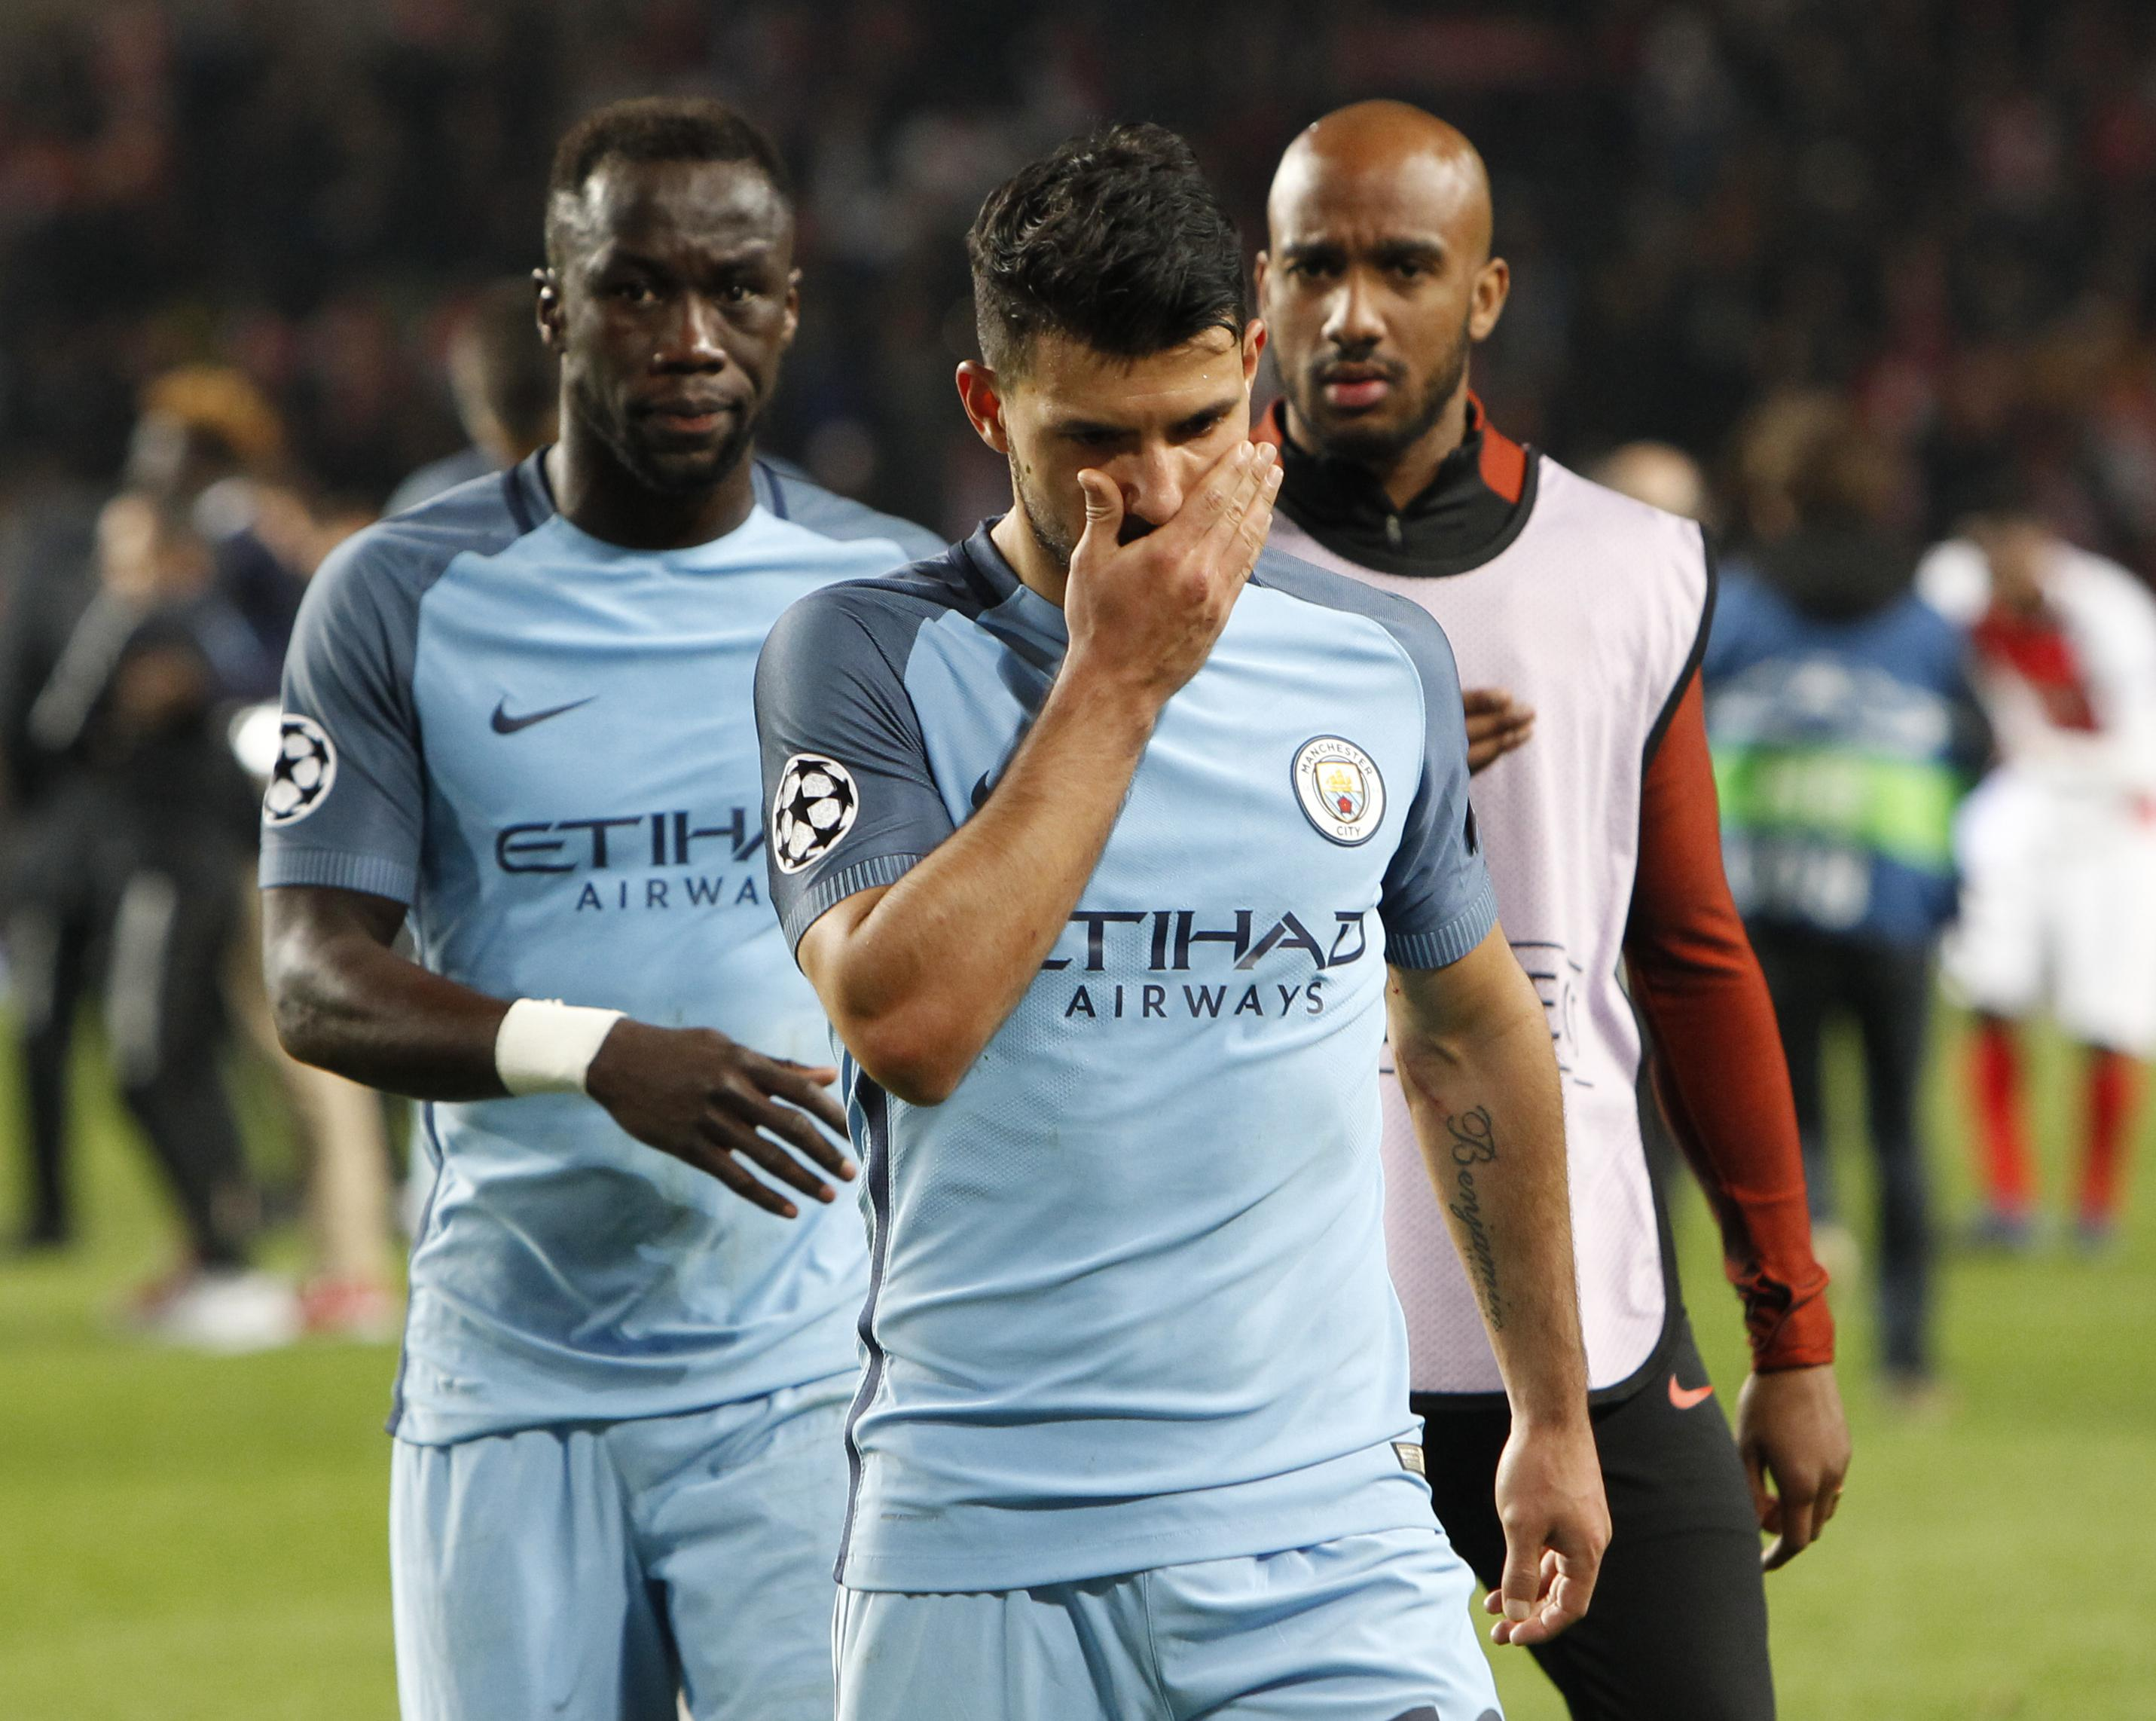 City were dumped out of the competition by Monaco last season